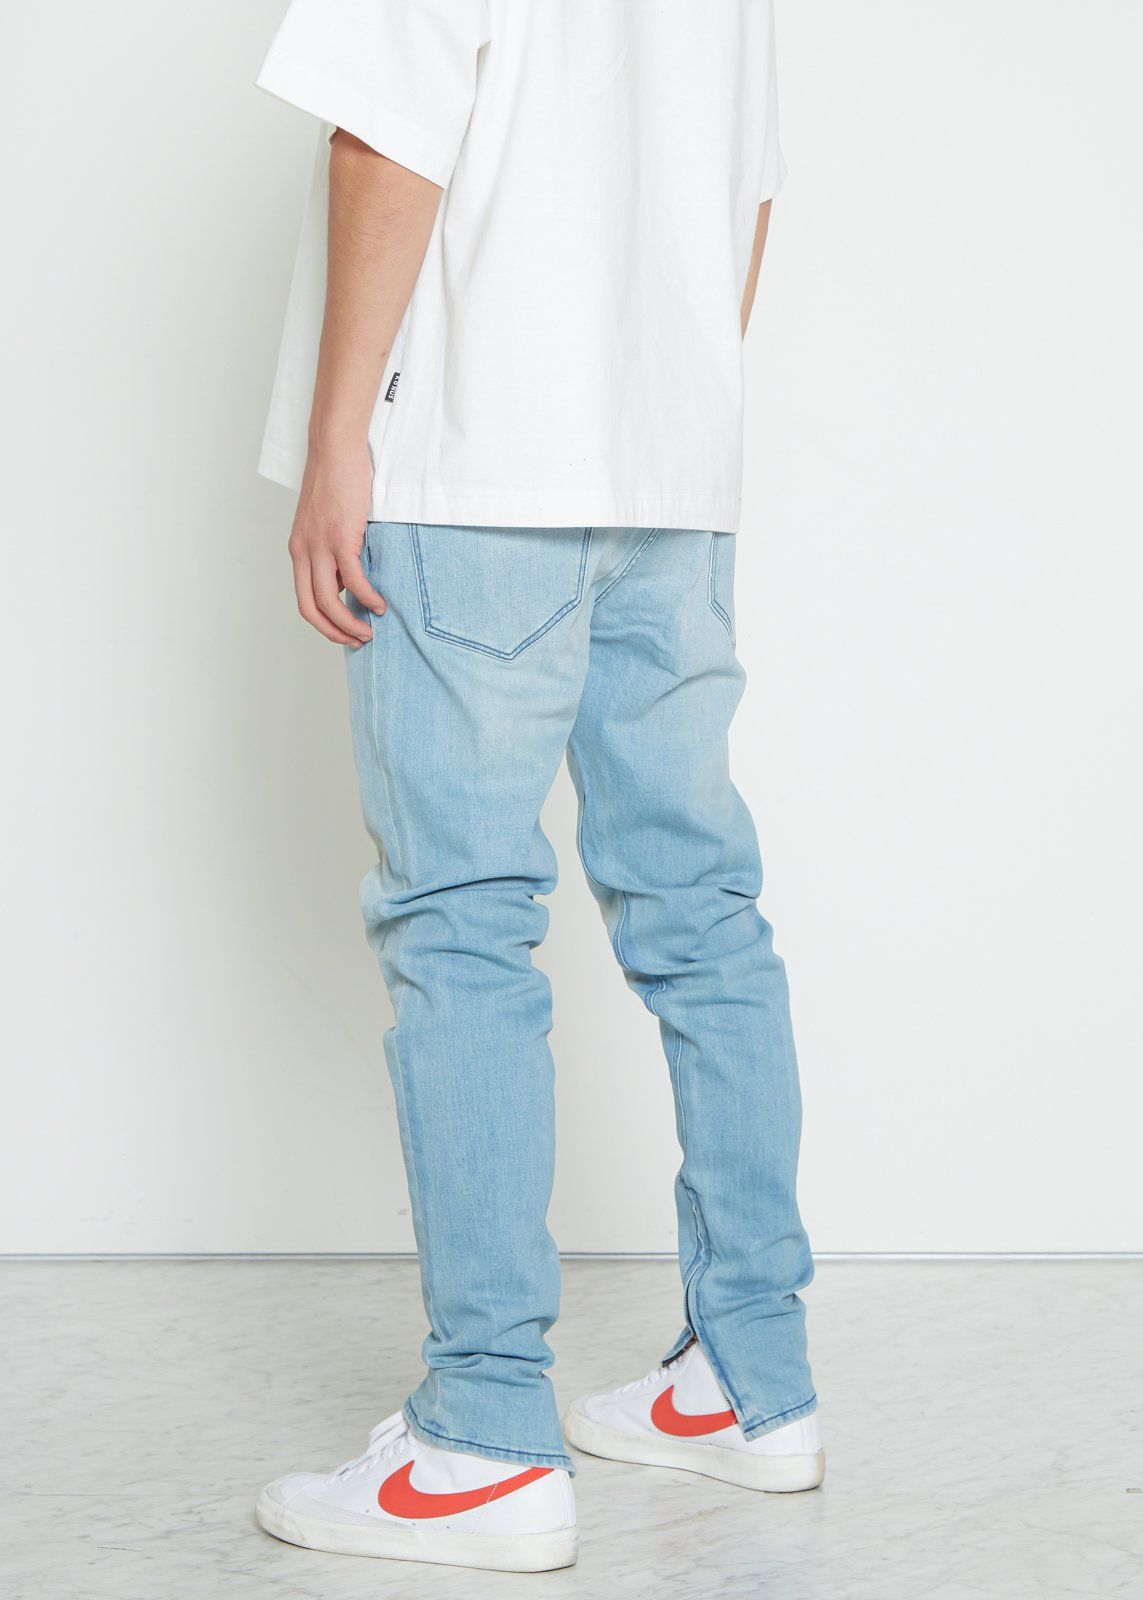 Men's Basic Ankle Zip Denim in Sky Blue by Konus Brand